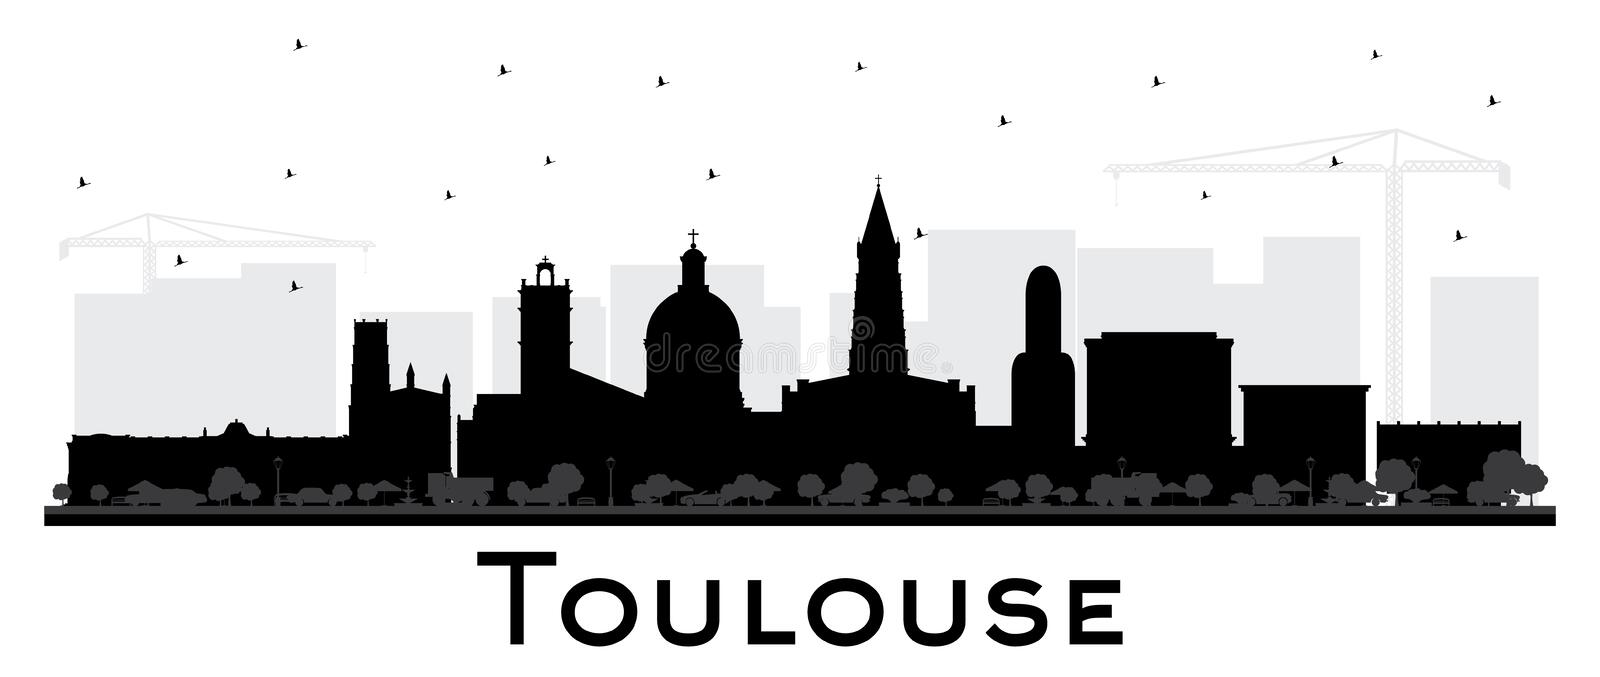 Toulouse France City Skyline Silhouette with Black Buildings Isolated on White. Vector Illustration. Business Travel and Concept with Historic Architecture vector illustration